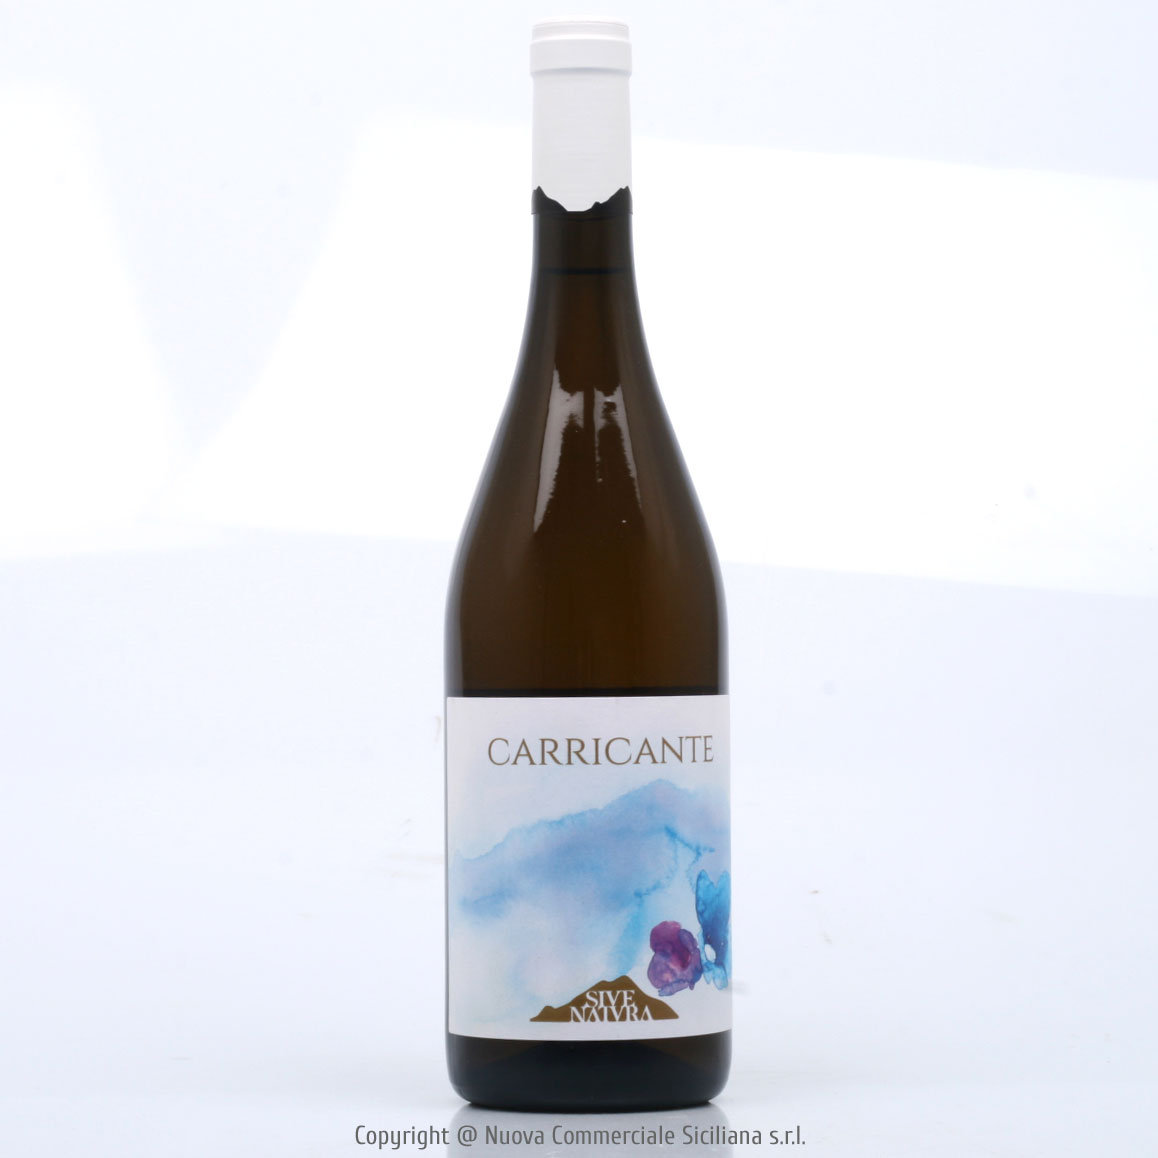 SIVE NATURA CARRICANTE IGT 2018 - SICILY/WHITE CL 75